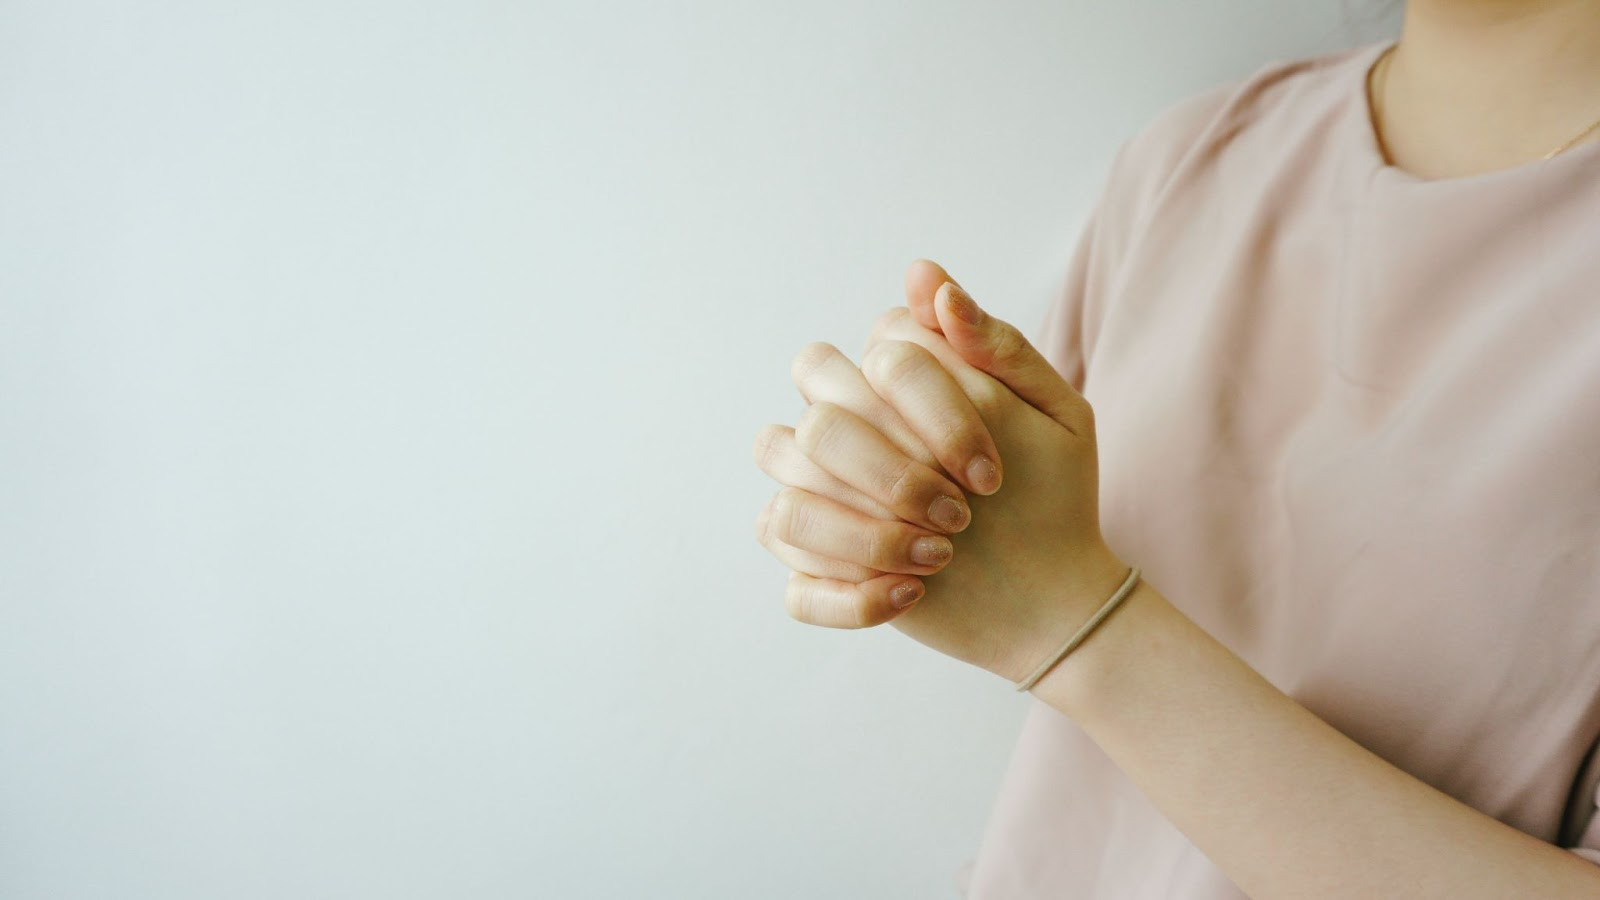 two hands of a person clasped in prayer